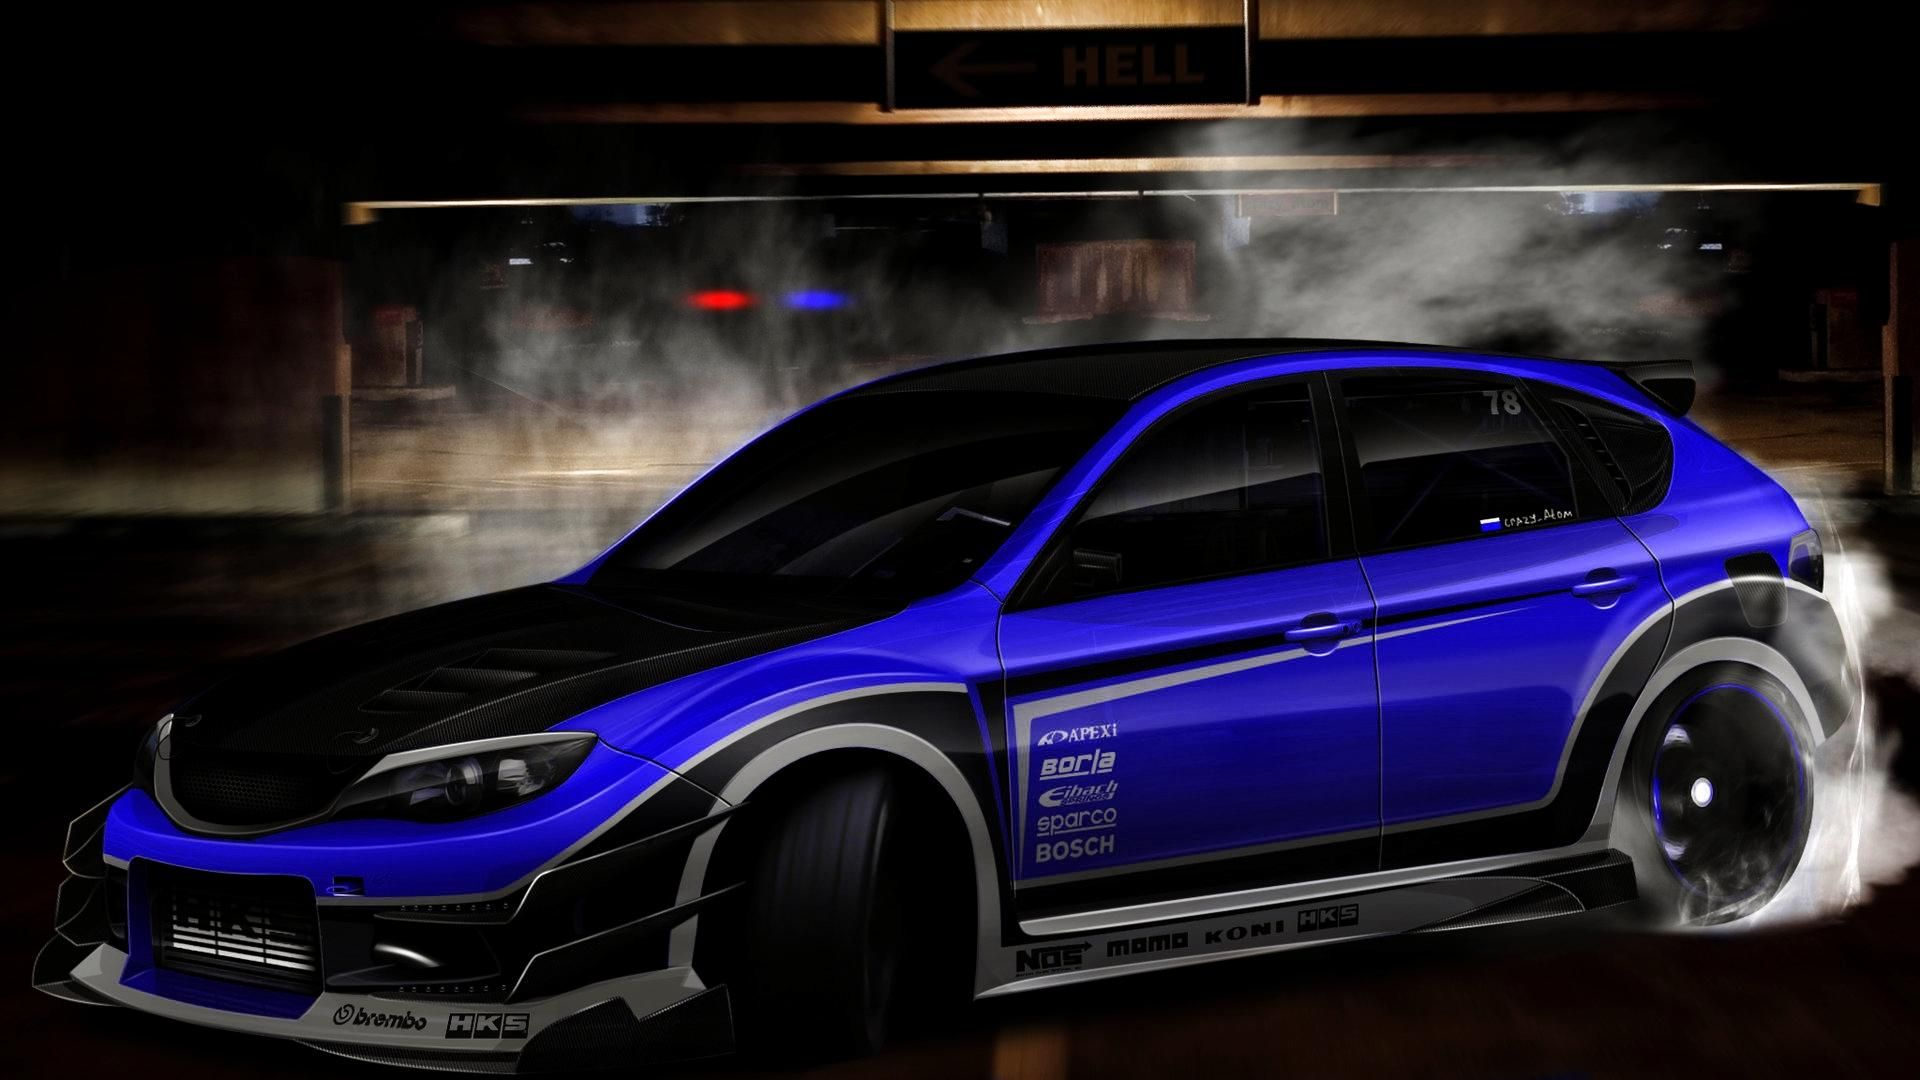 Astonishing Car Blue Modify Car Pictures For Pc Pin Hd Wallpapers Car Wallpapers Car Car Pictures